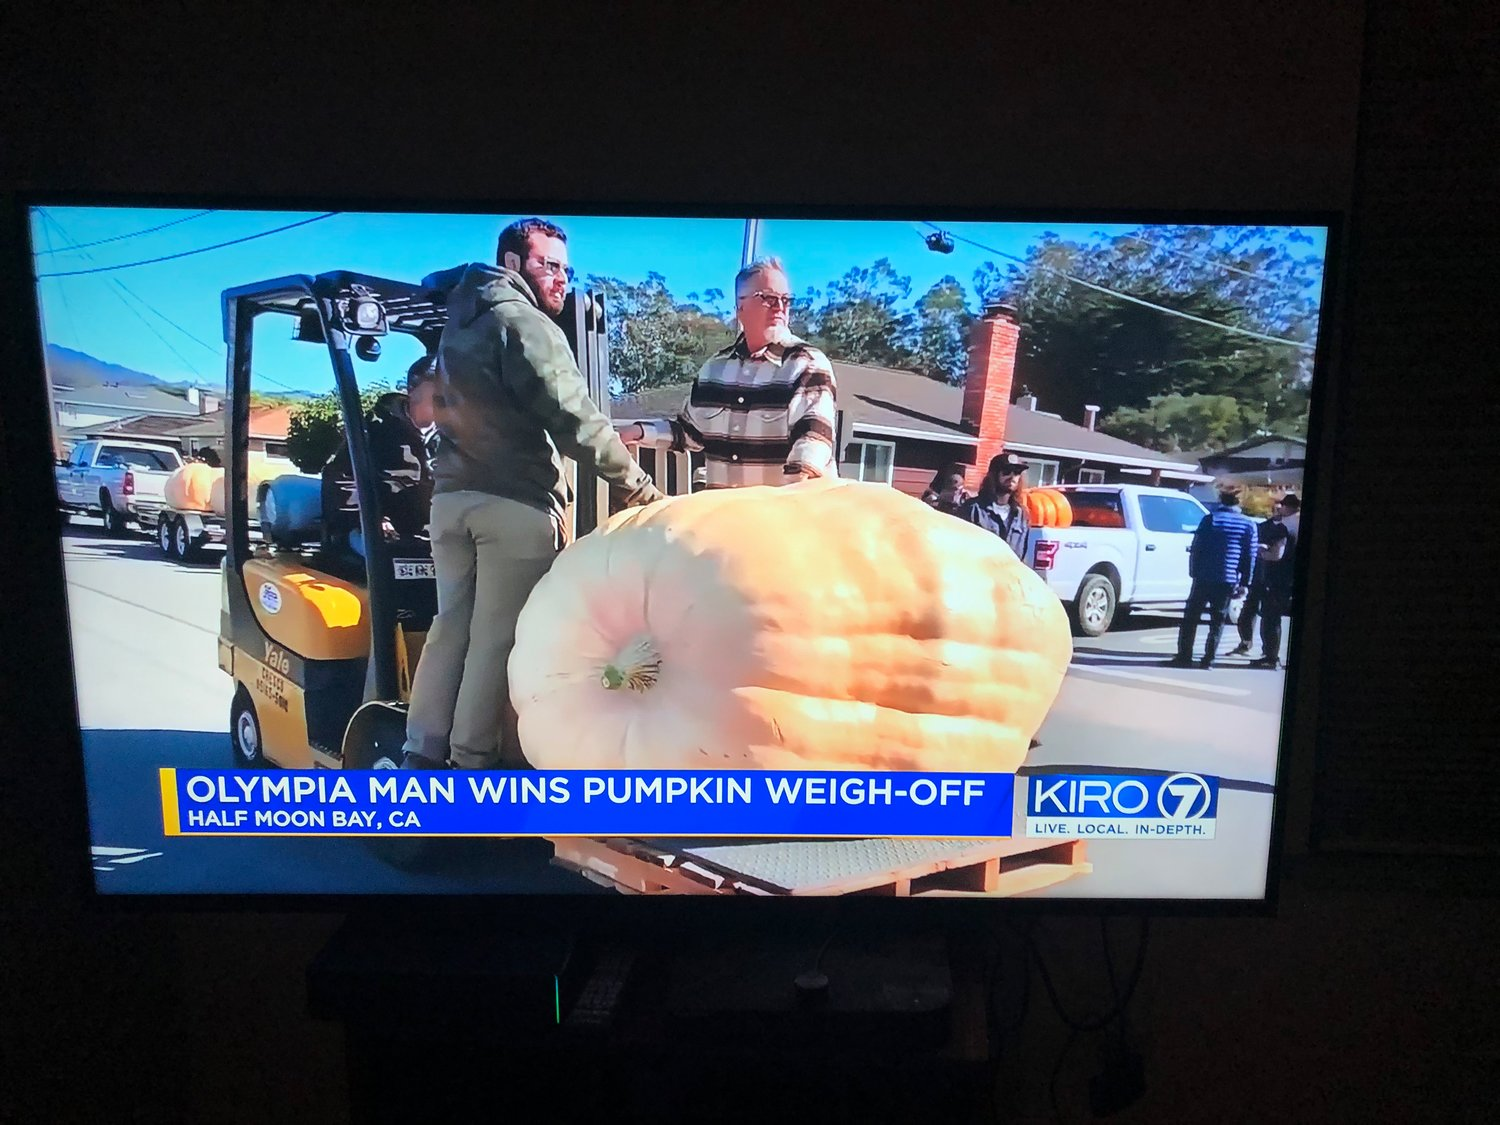 Jeff Uhlmeyer's giant pumpkin is escorted to the weighing platform, as shown on KIRO7 News on Oct. 12, 2021.